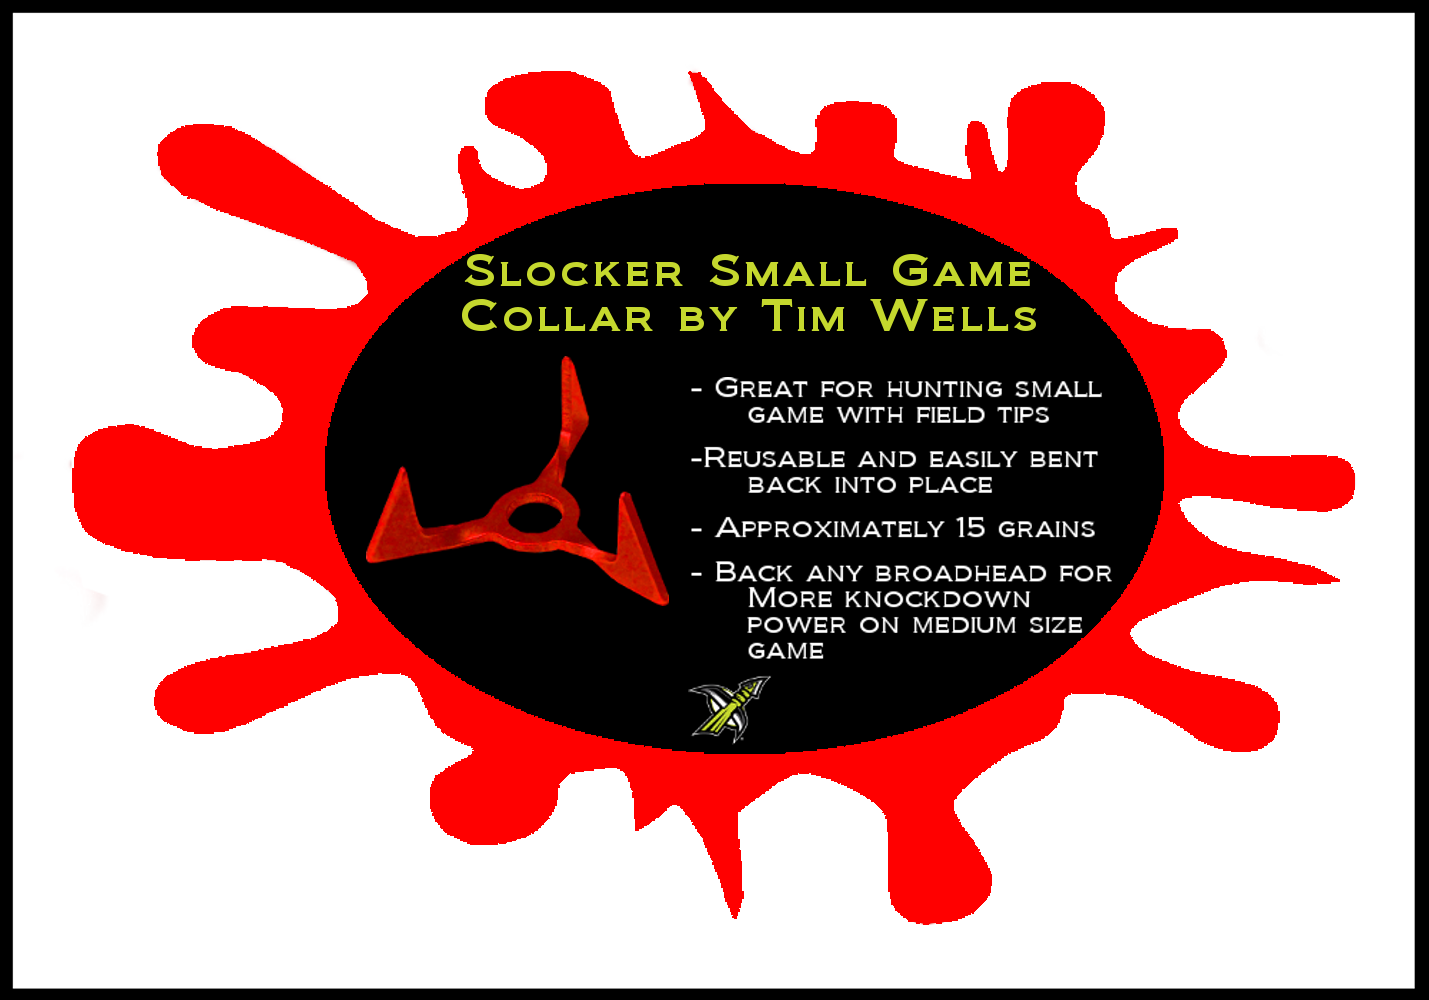 Slocker Small Game Collar